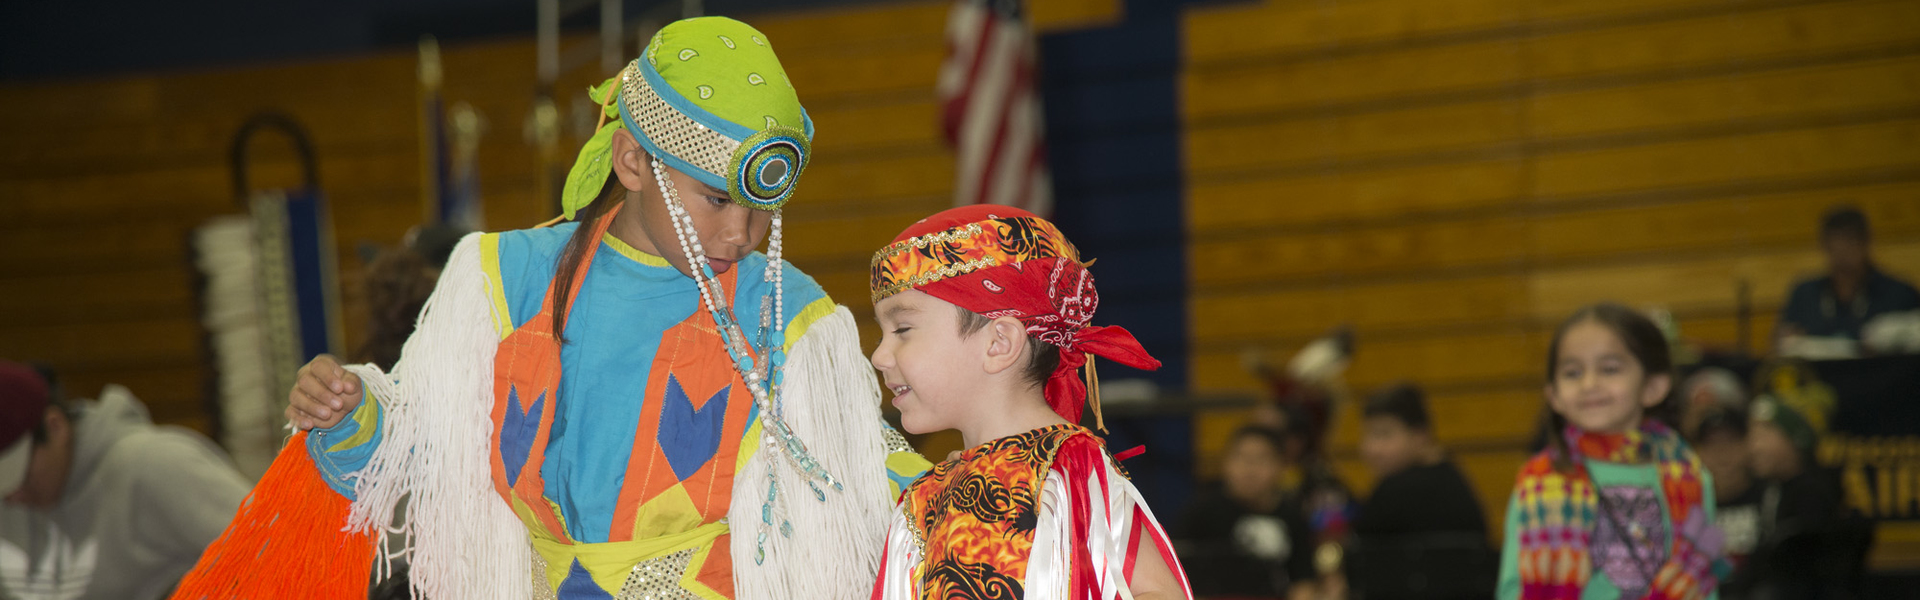 Youth dancer at 2016 PowWow